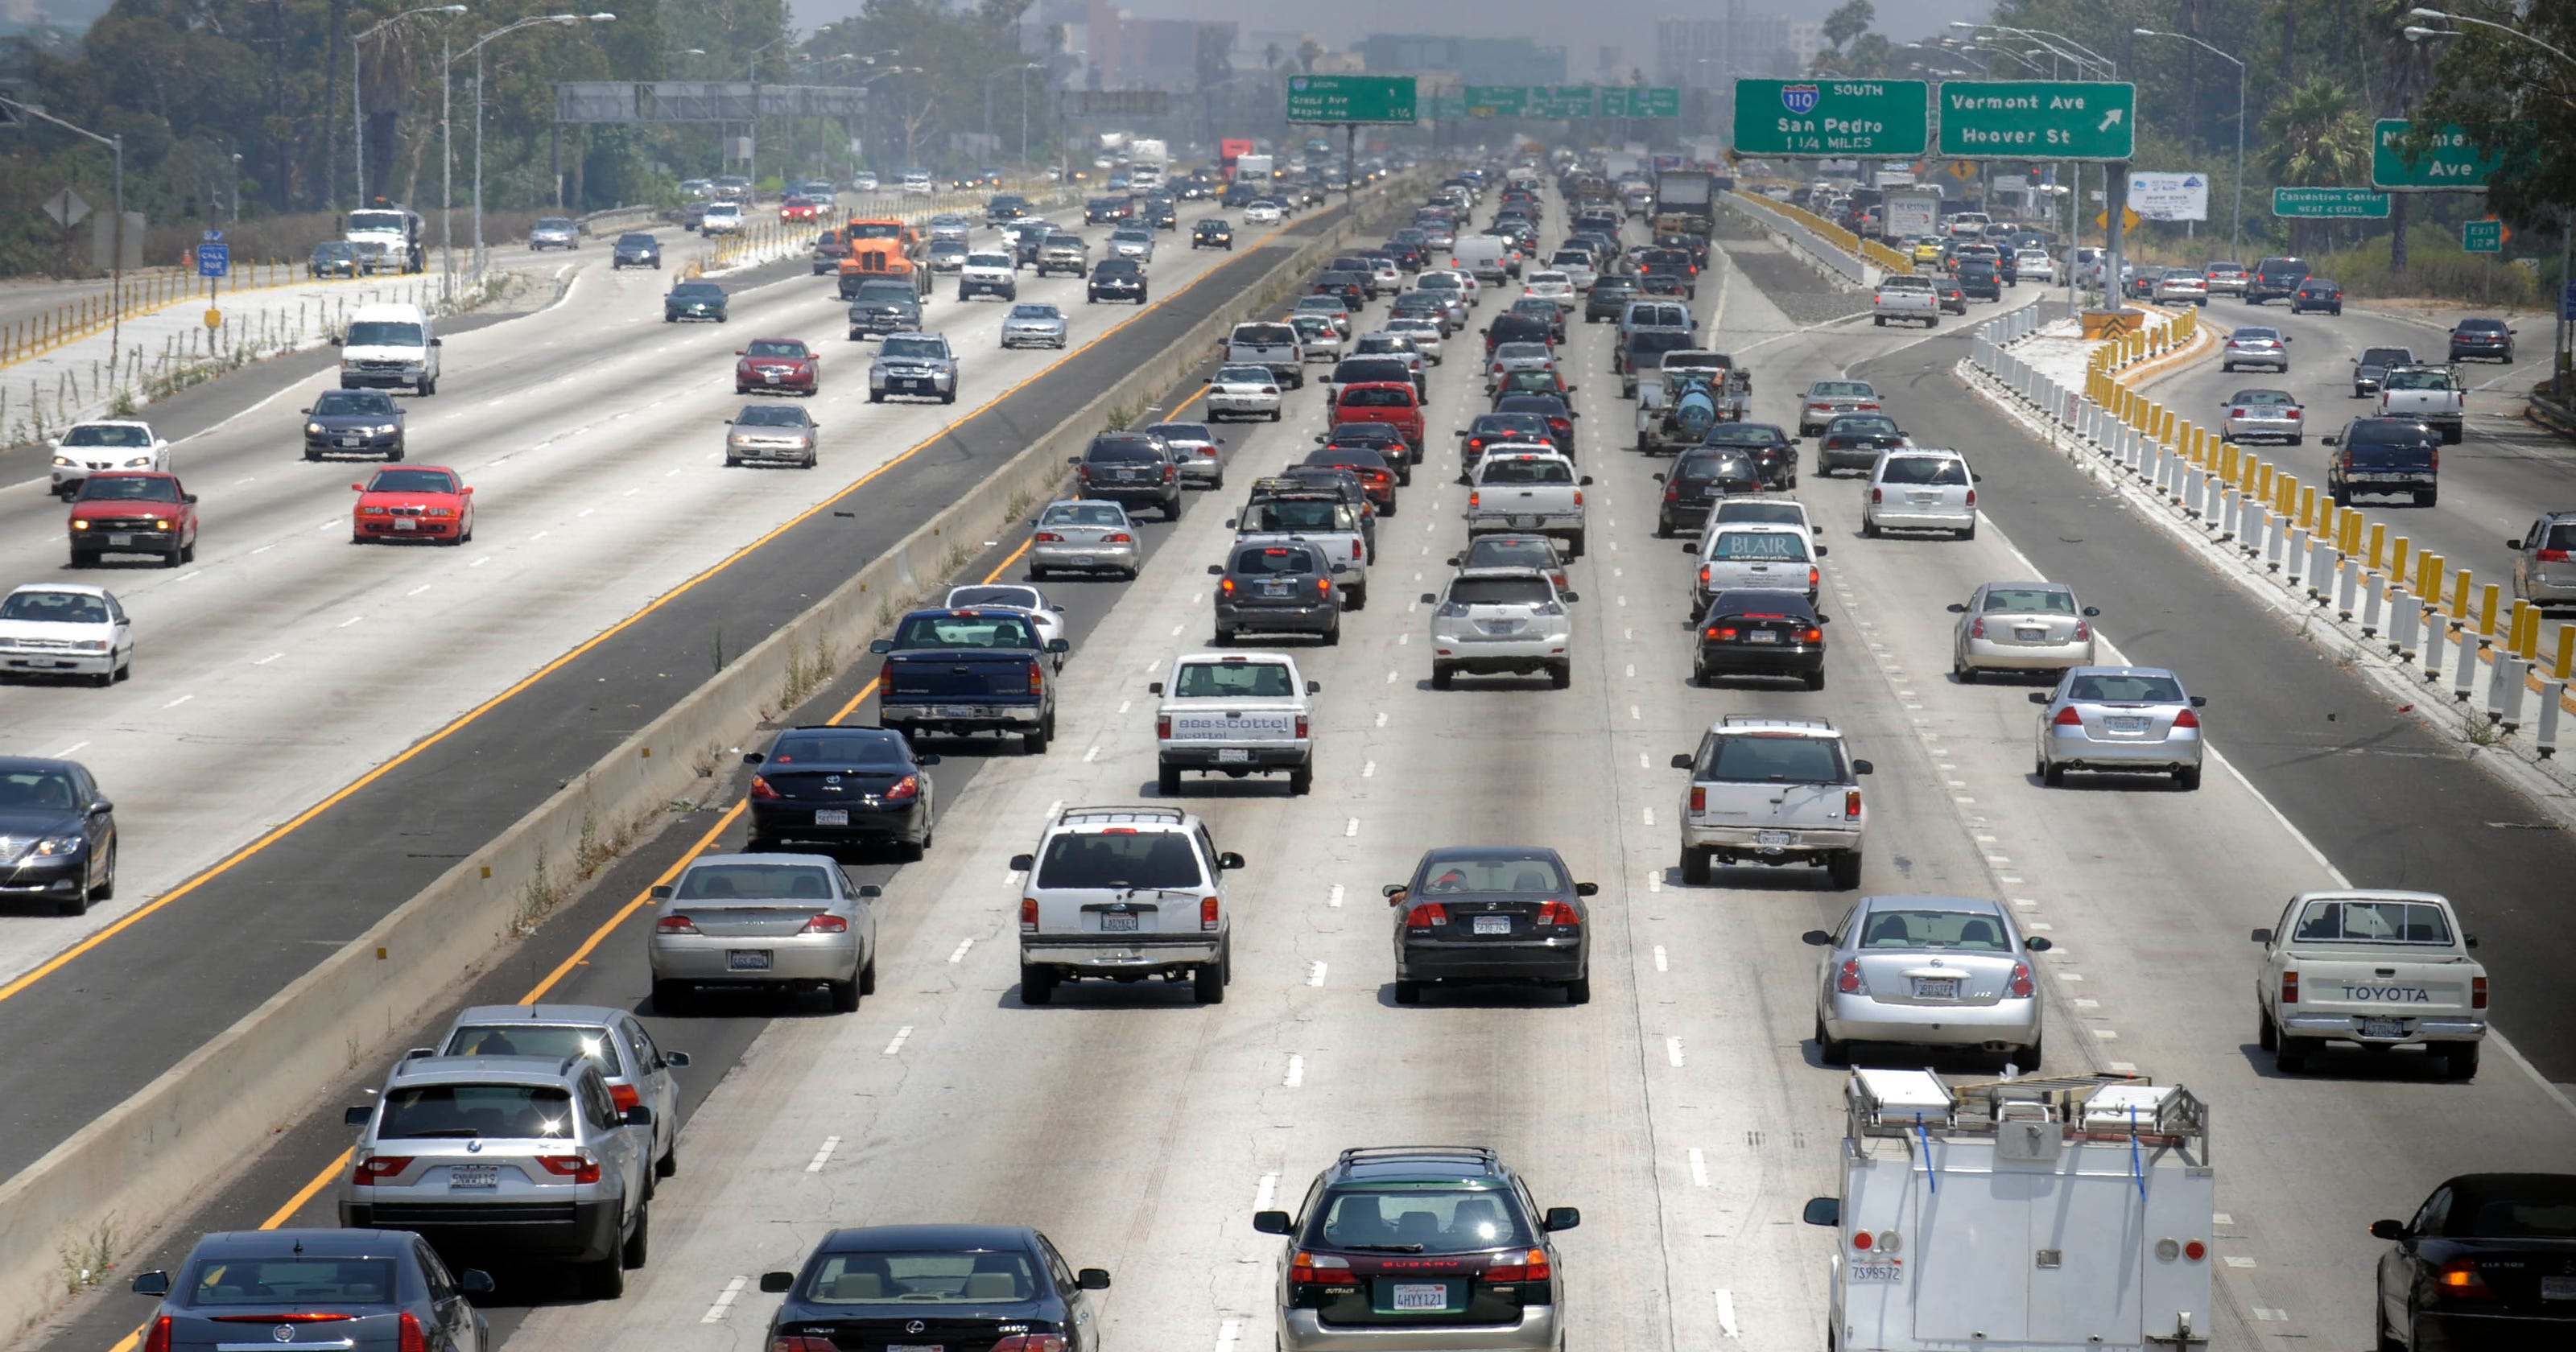 Study: Auto jobs would suffer under gas-mileage standards